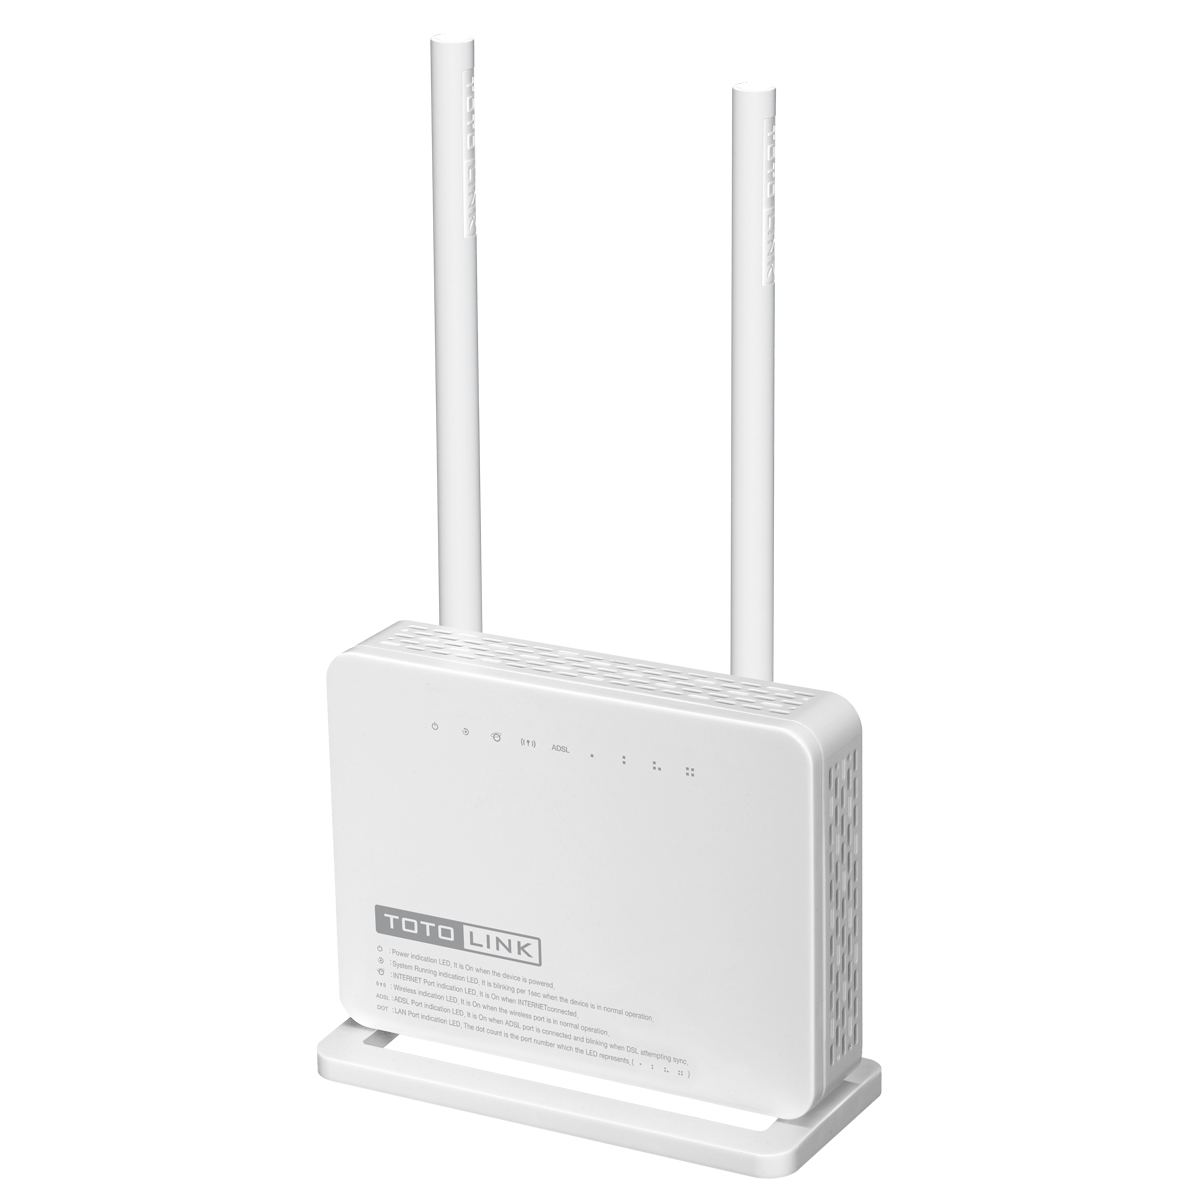 toto-link-modem-router-nd300_photo01